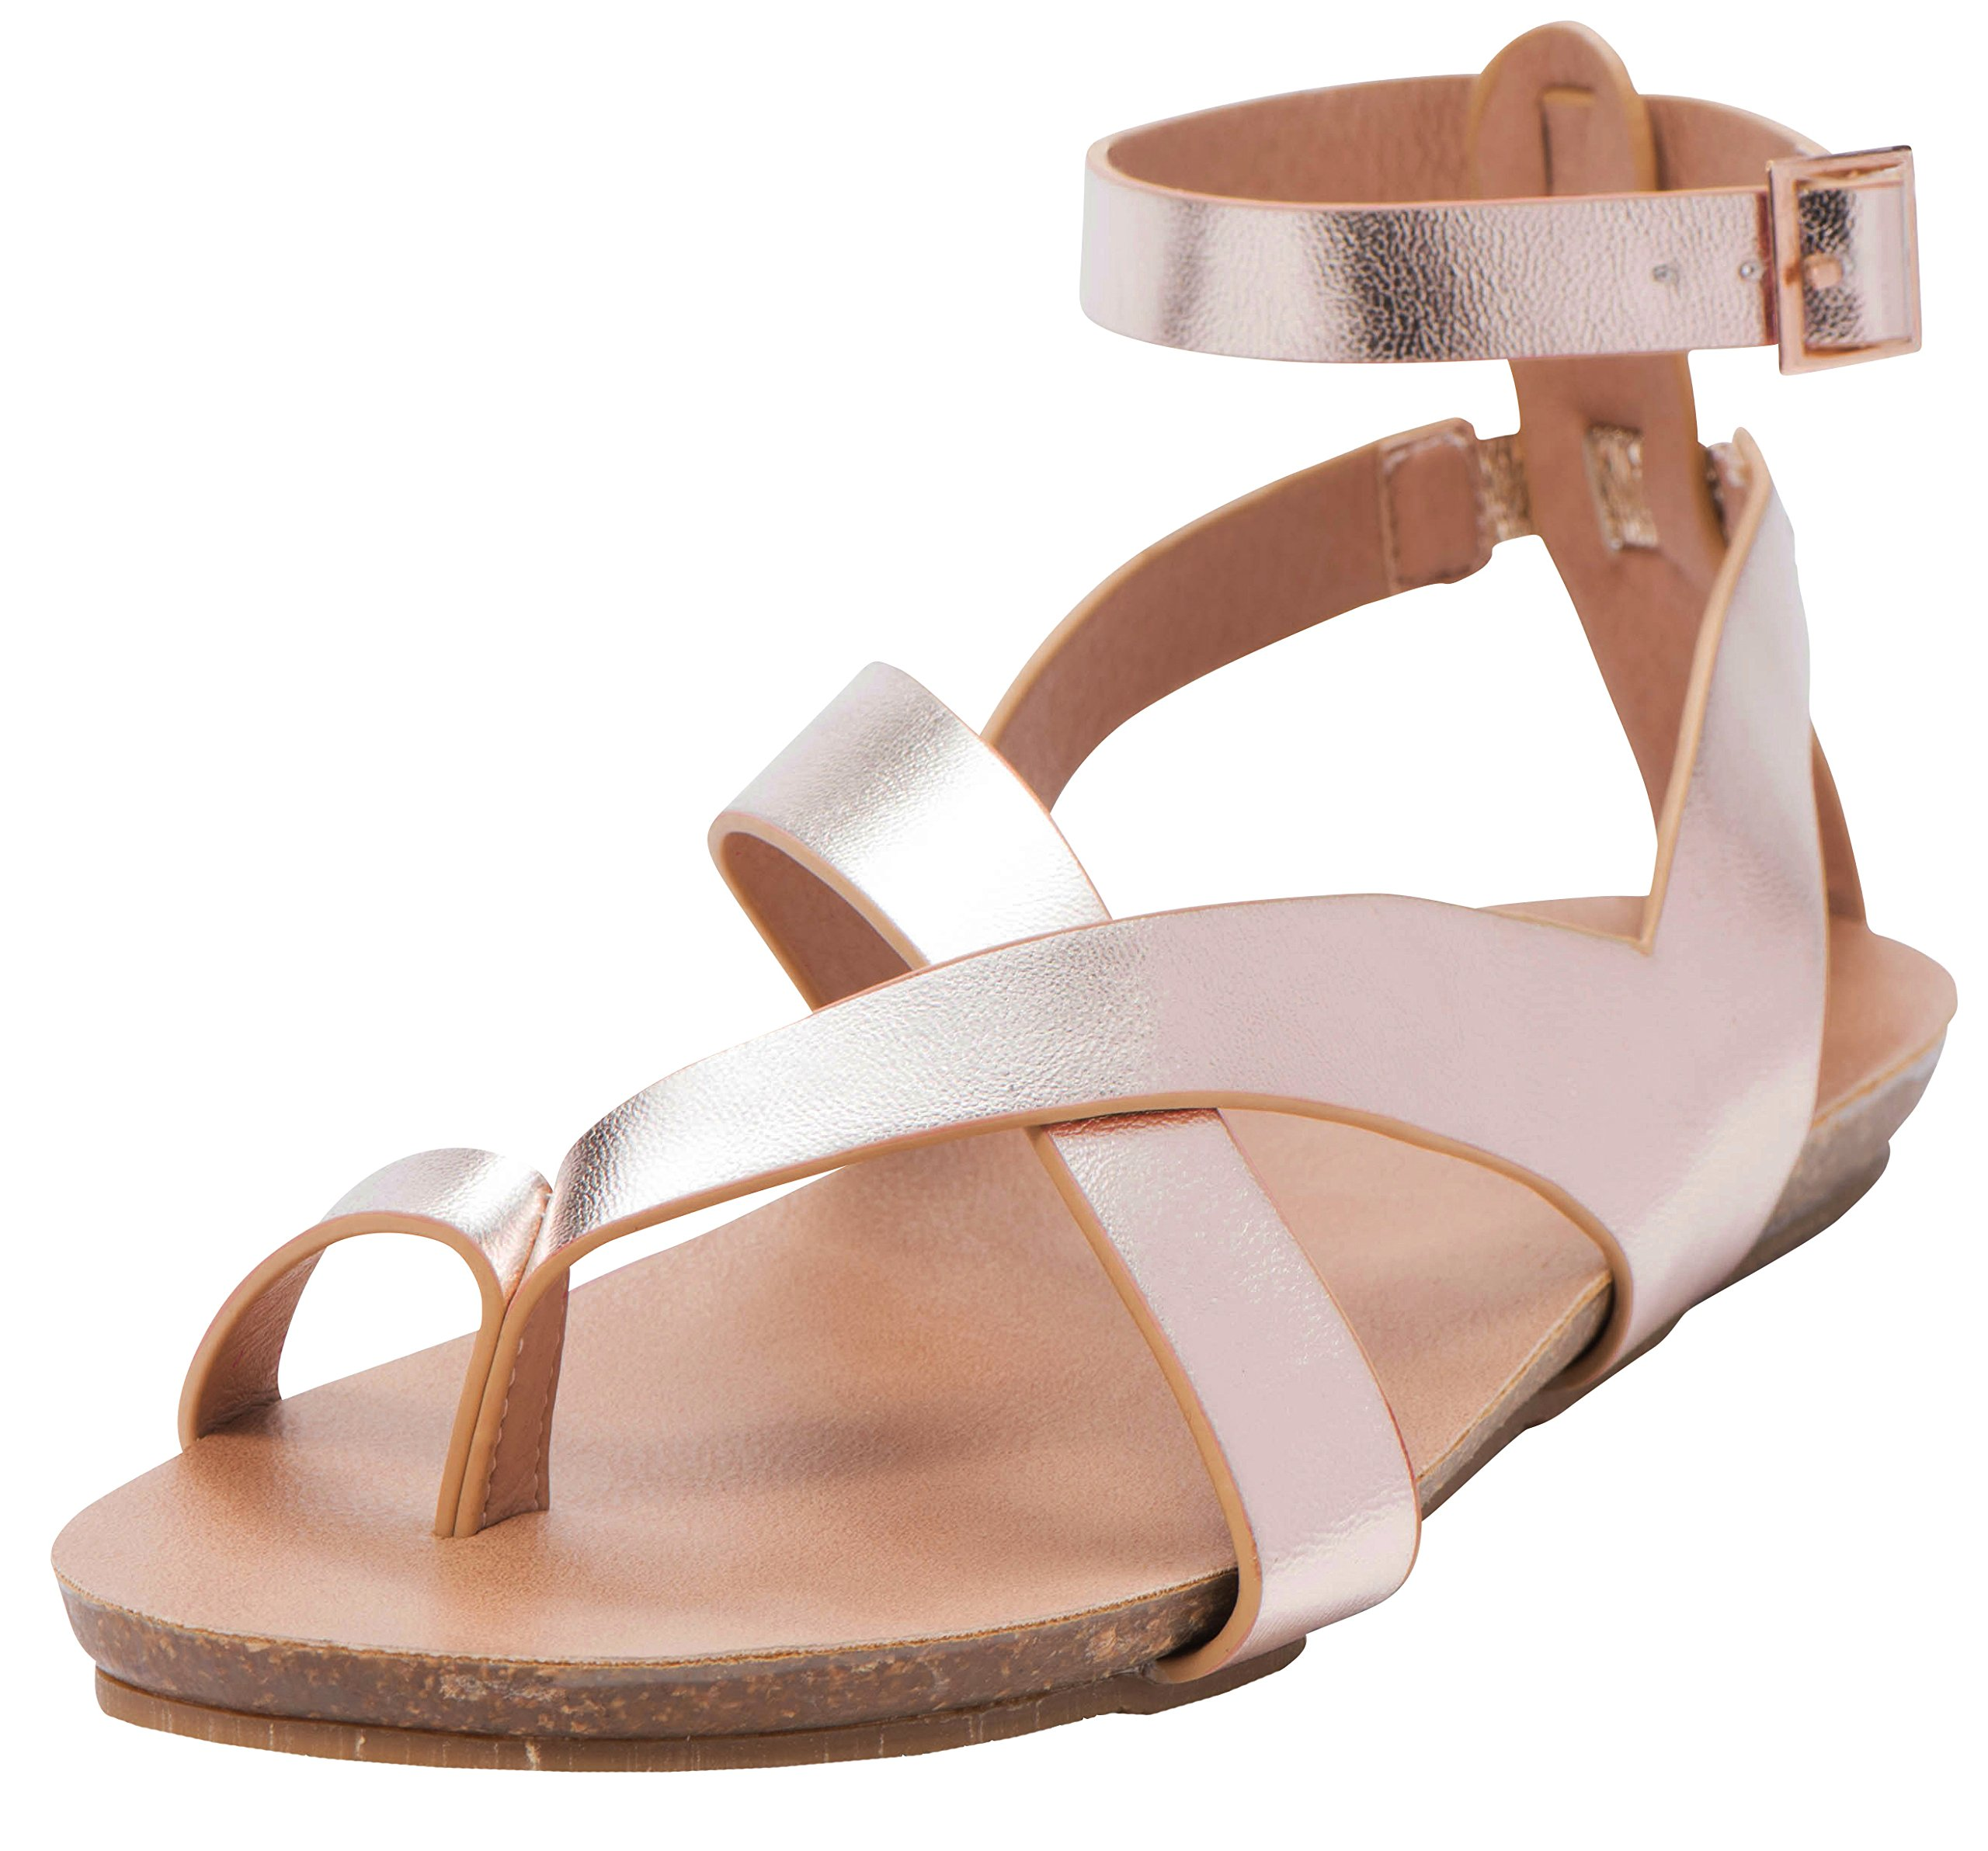 Cambridge Select Women's Crisscross Thong Buckled Ankle Strappy Flat Sandal (8 B(M) US, Rose Gold PU)